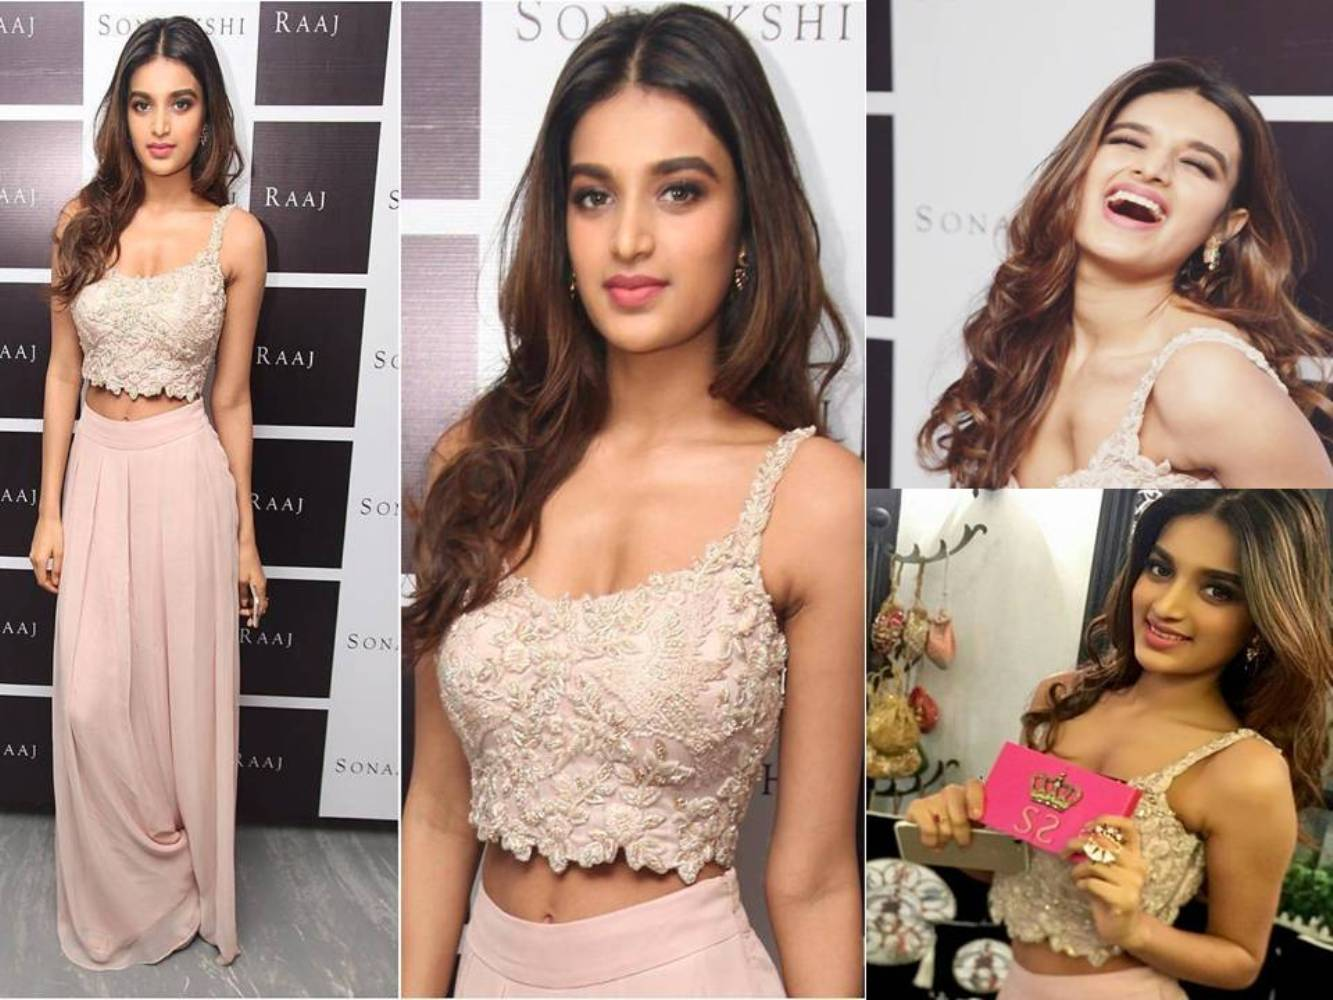 Nidhhi Agerwal's Ditches Her Monotone Style At A Store Launch Event